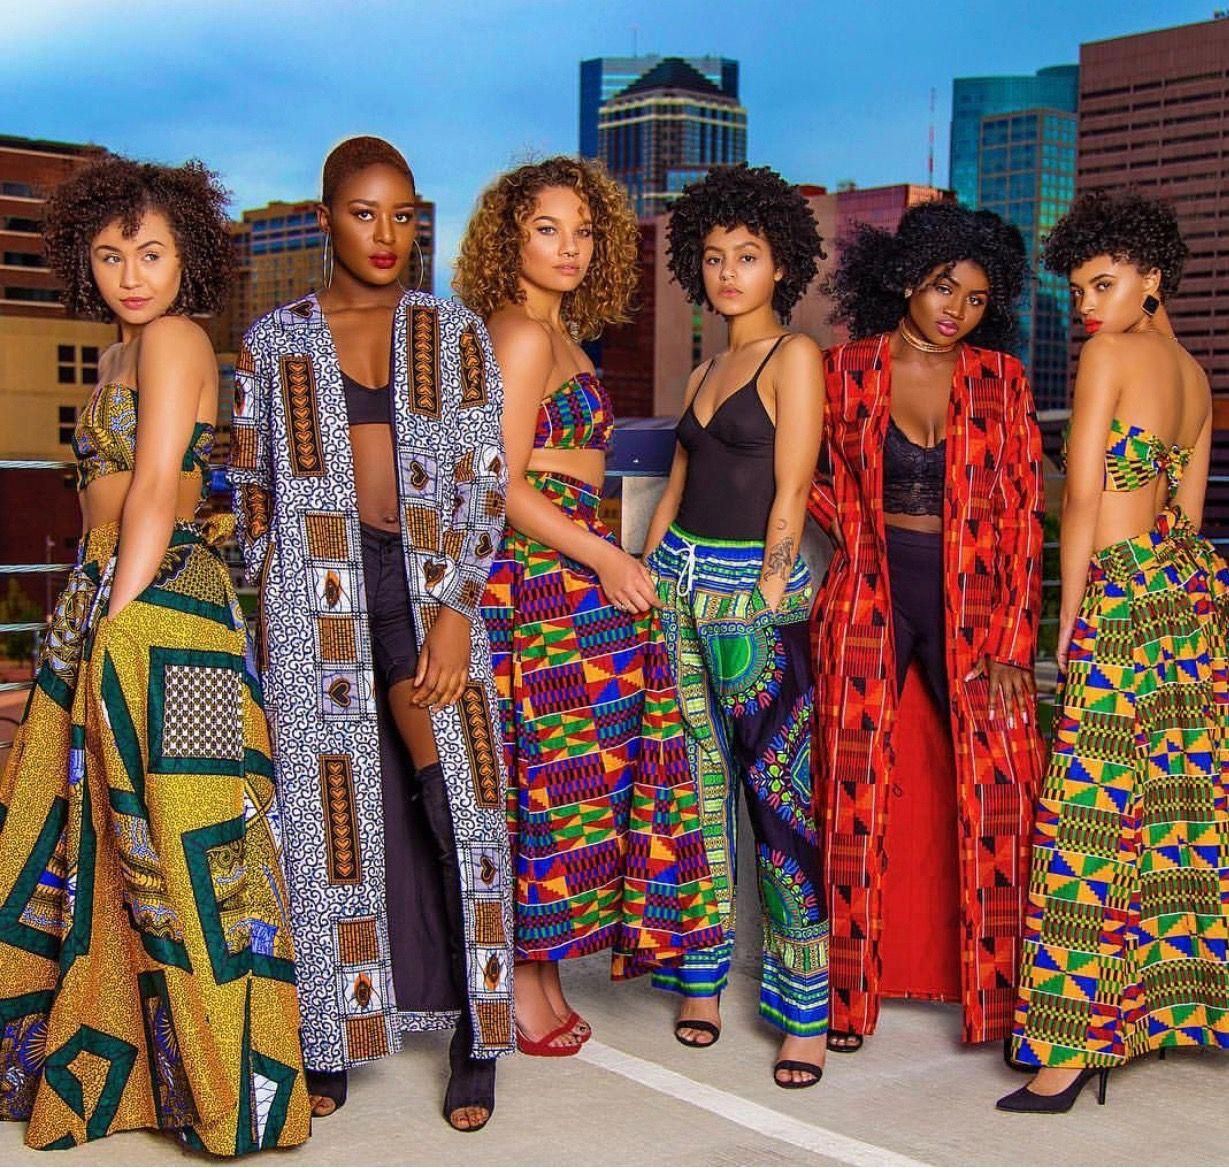 86c2145d7bf3 I want to host an African fashion party or festival ...